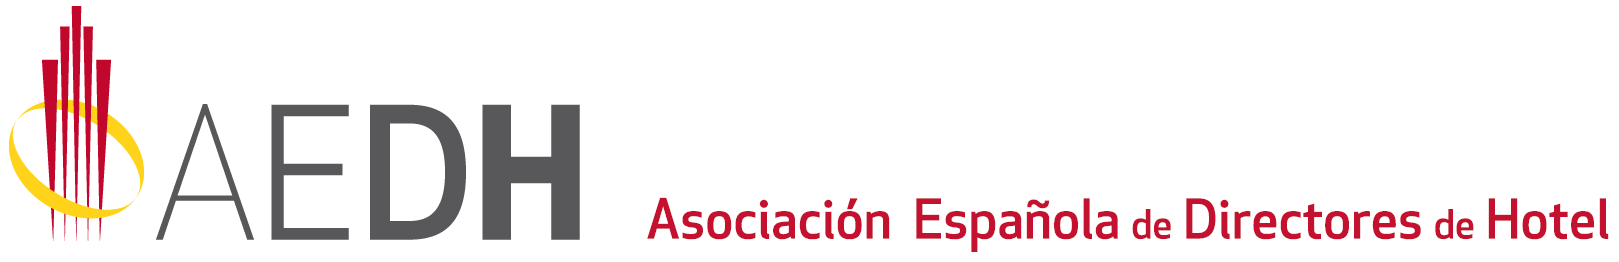 Comunidad_AEDH - Asociación Española de Directores de Hotel